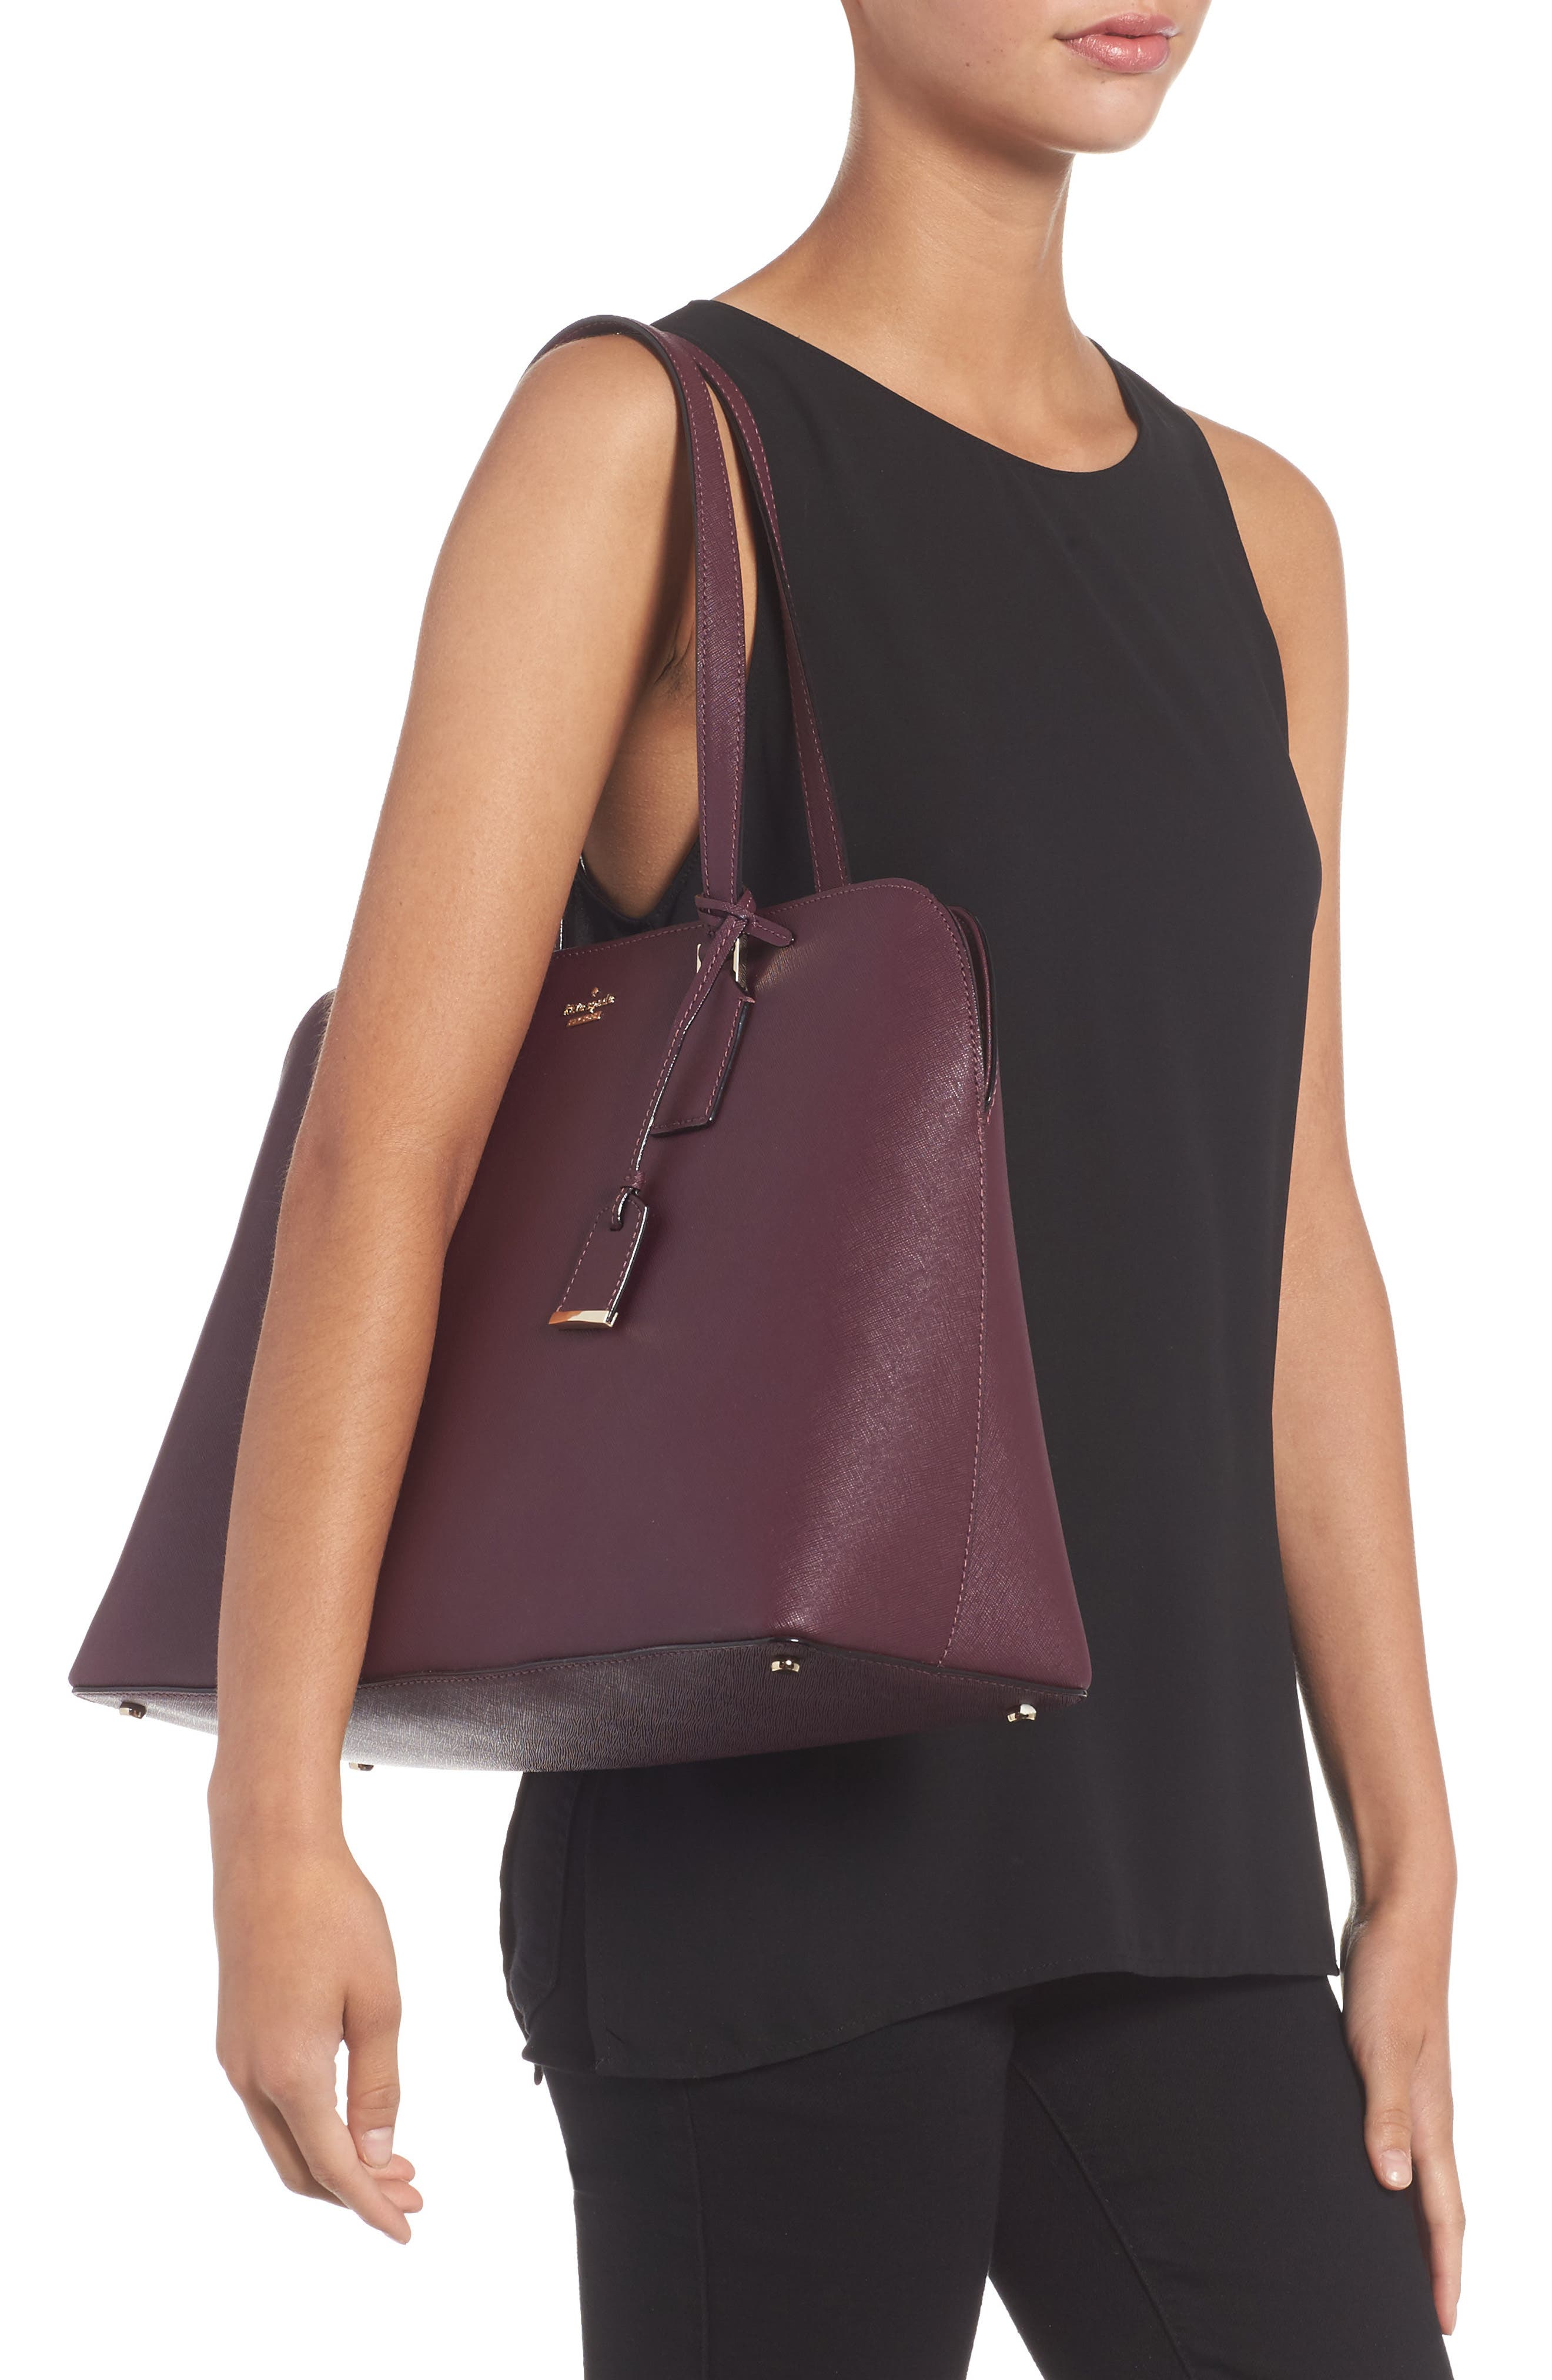 cameron street - marybeth leather tote,                             Alternate thumbnail 2, color,                             513